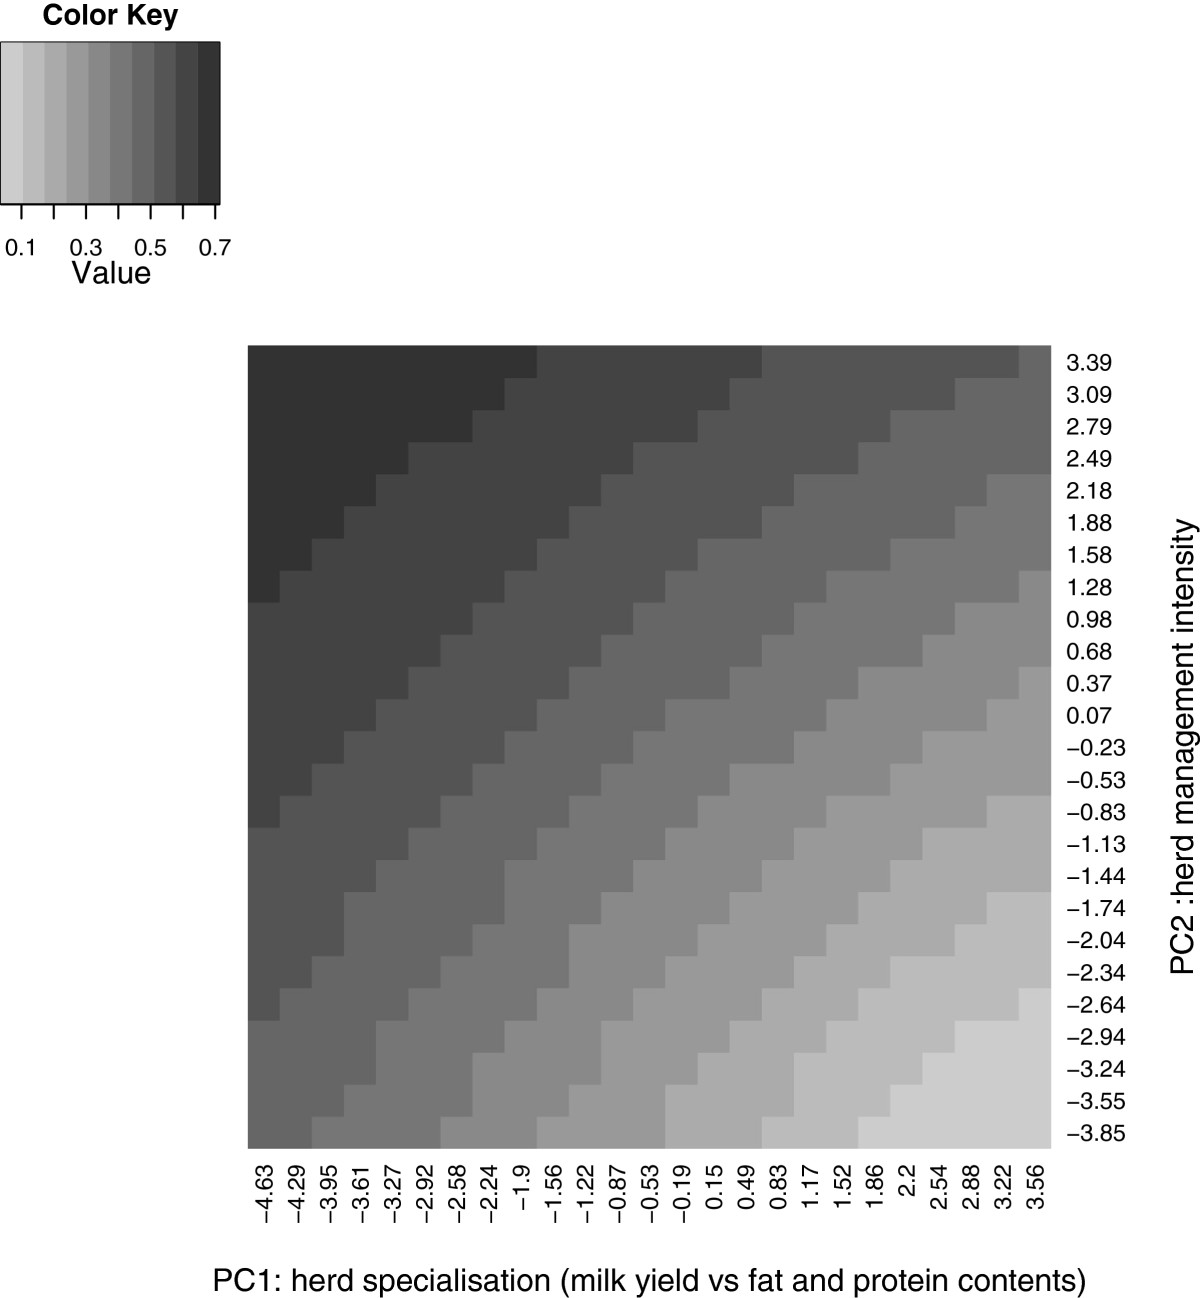 https://static-content.springer.com/image/art%3A10.1186%2F1297-9686-44-35/MediaObjects/12711_2012_Article_2553_Fig5_HTML.jpg